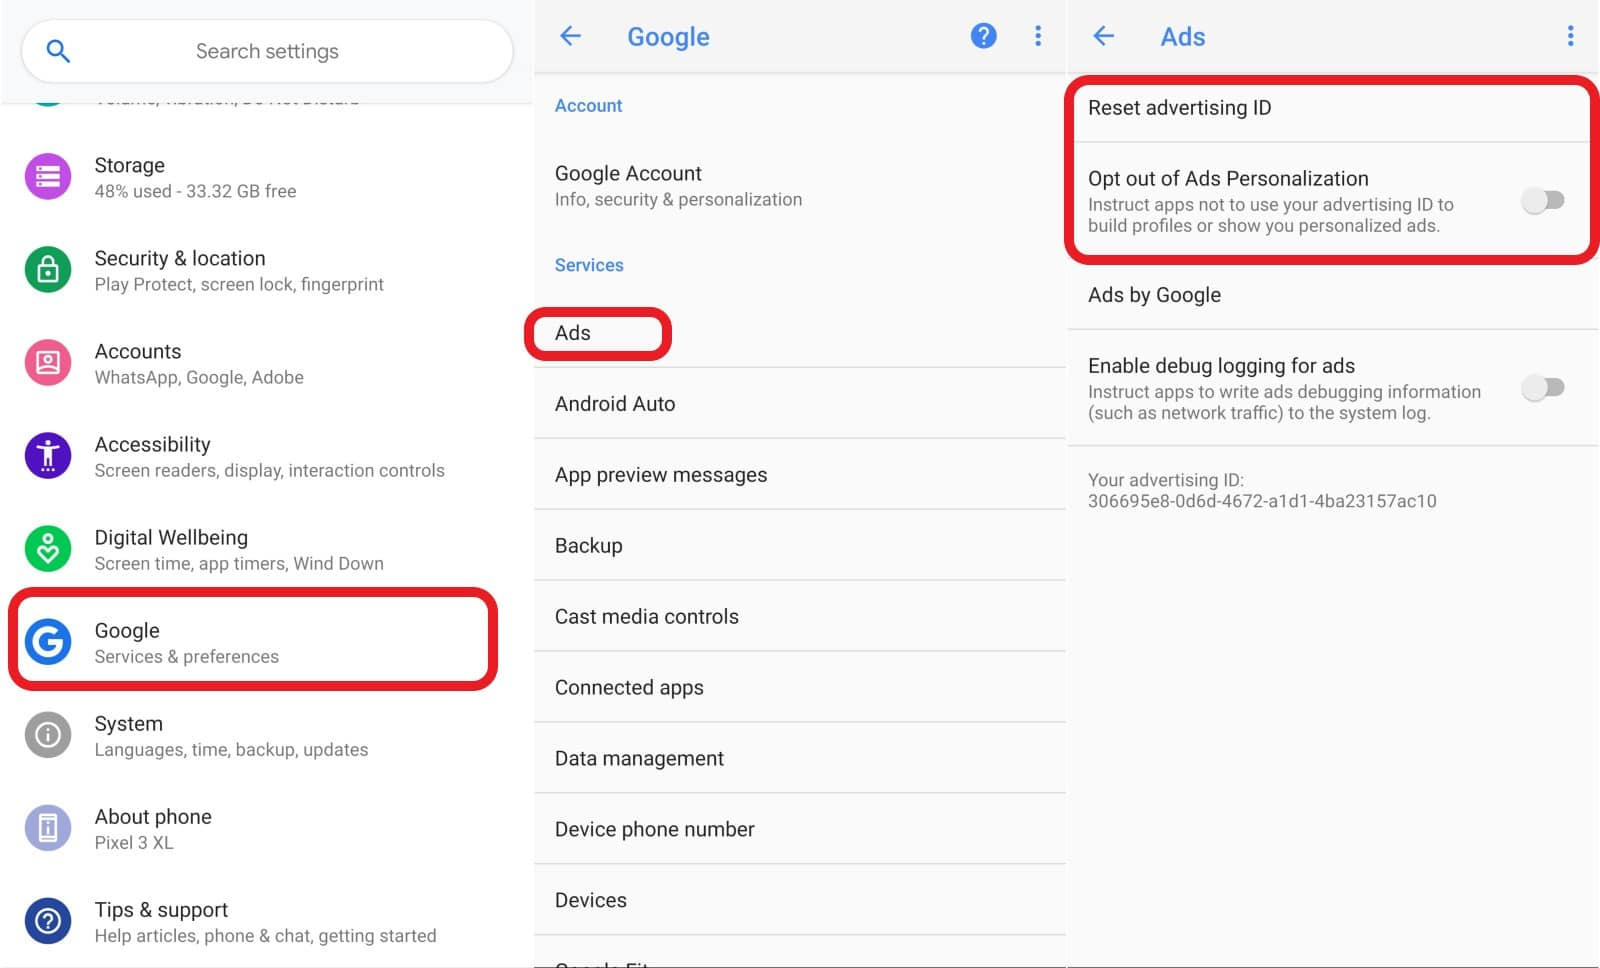 google android settings app for turning off ad personalization